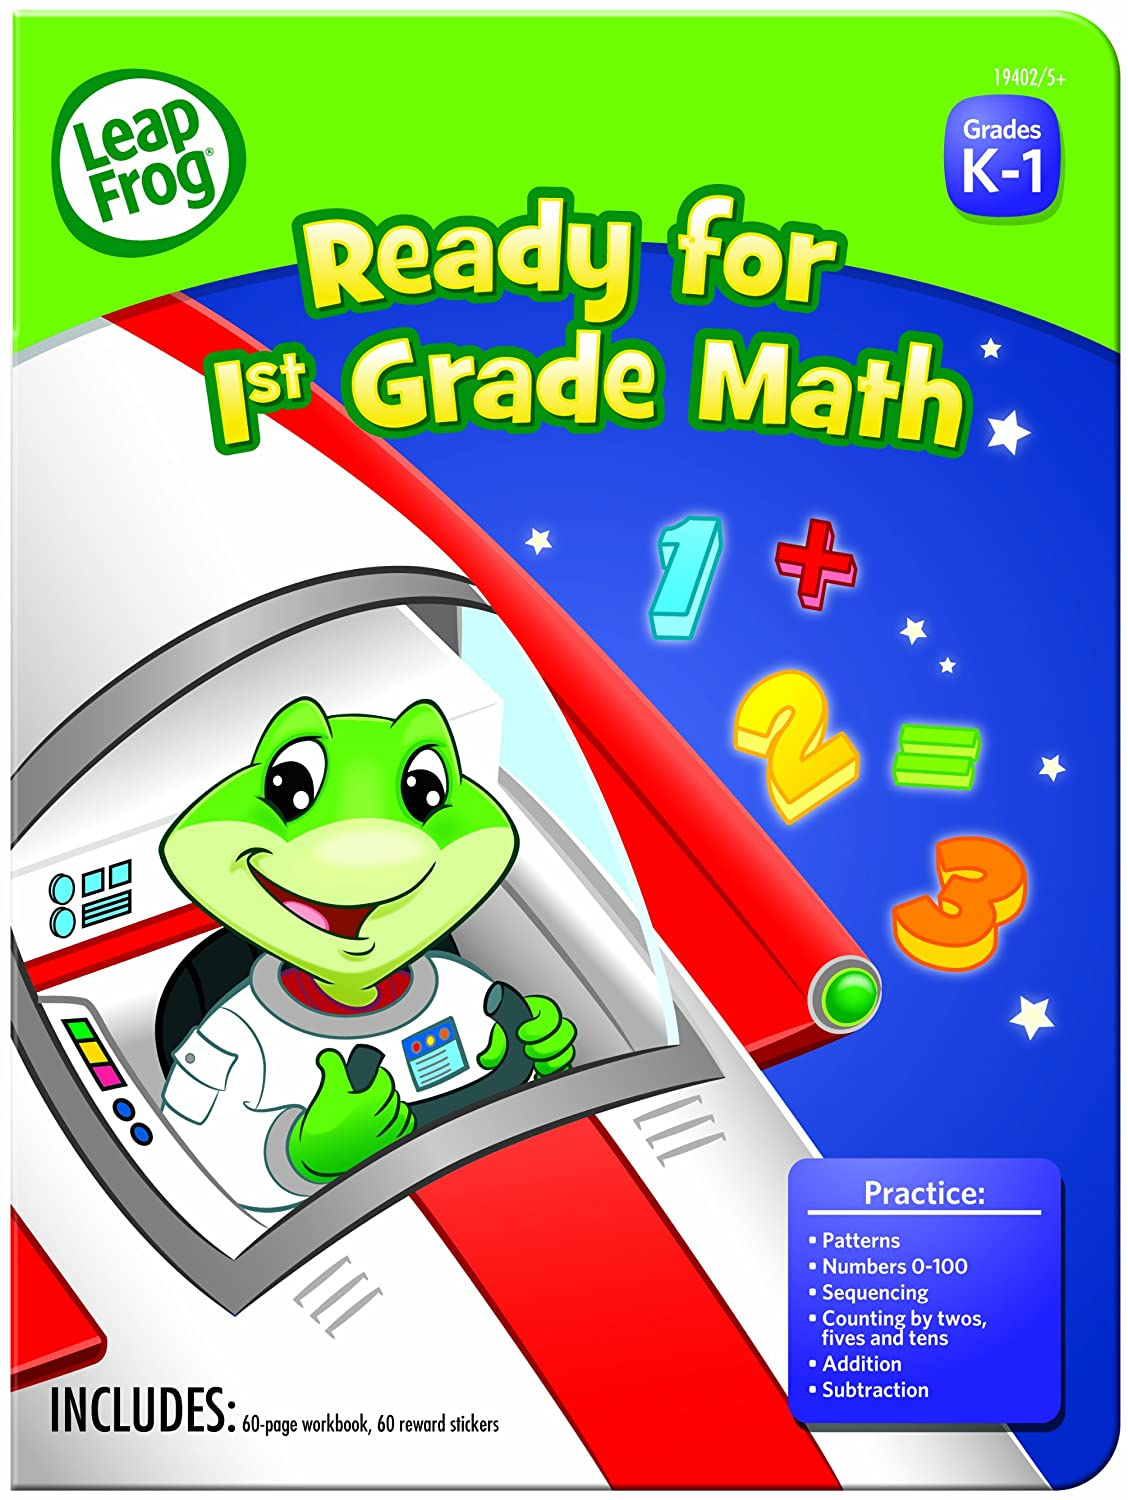 Amazon.com : LeapFrog Ready for 1st Grade Math Workbook with 60 Pages and  60 Reward Stickers (19402) : Office Products